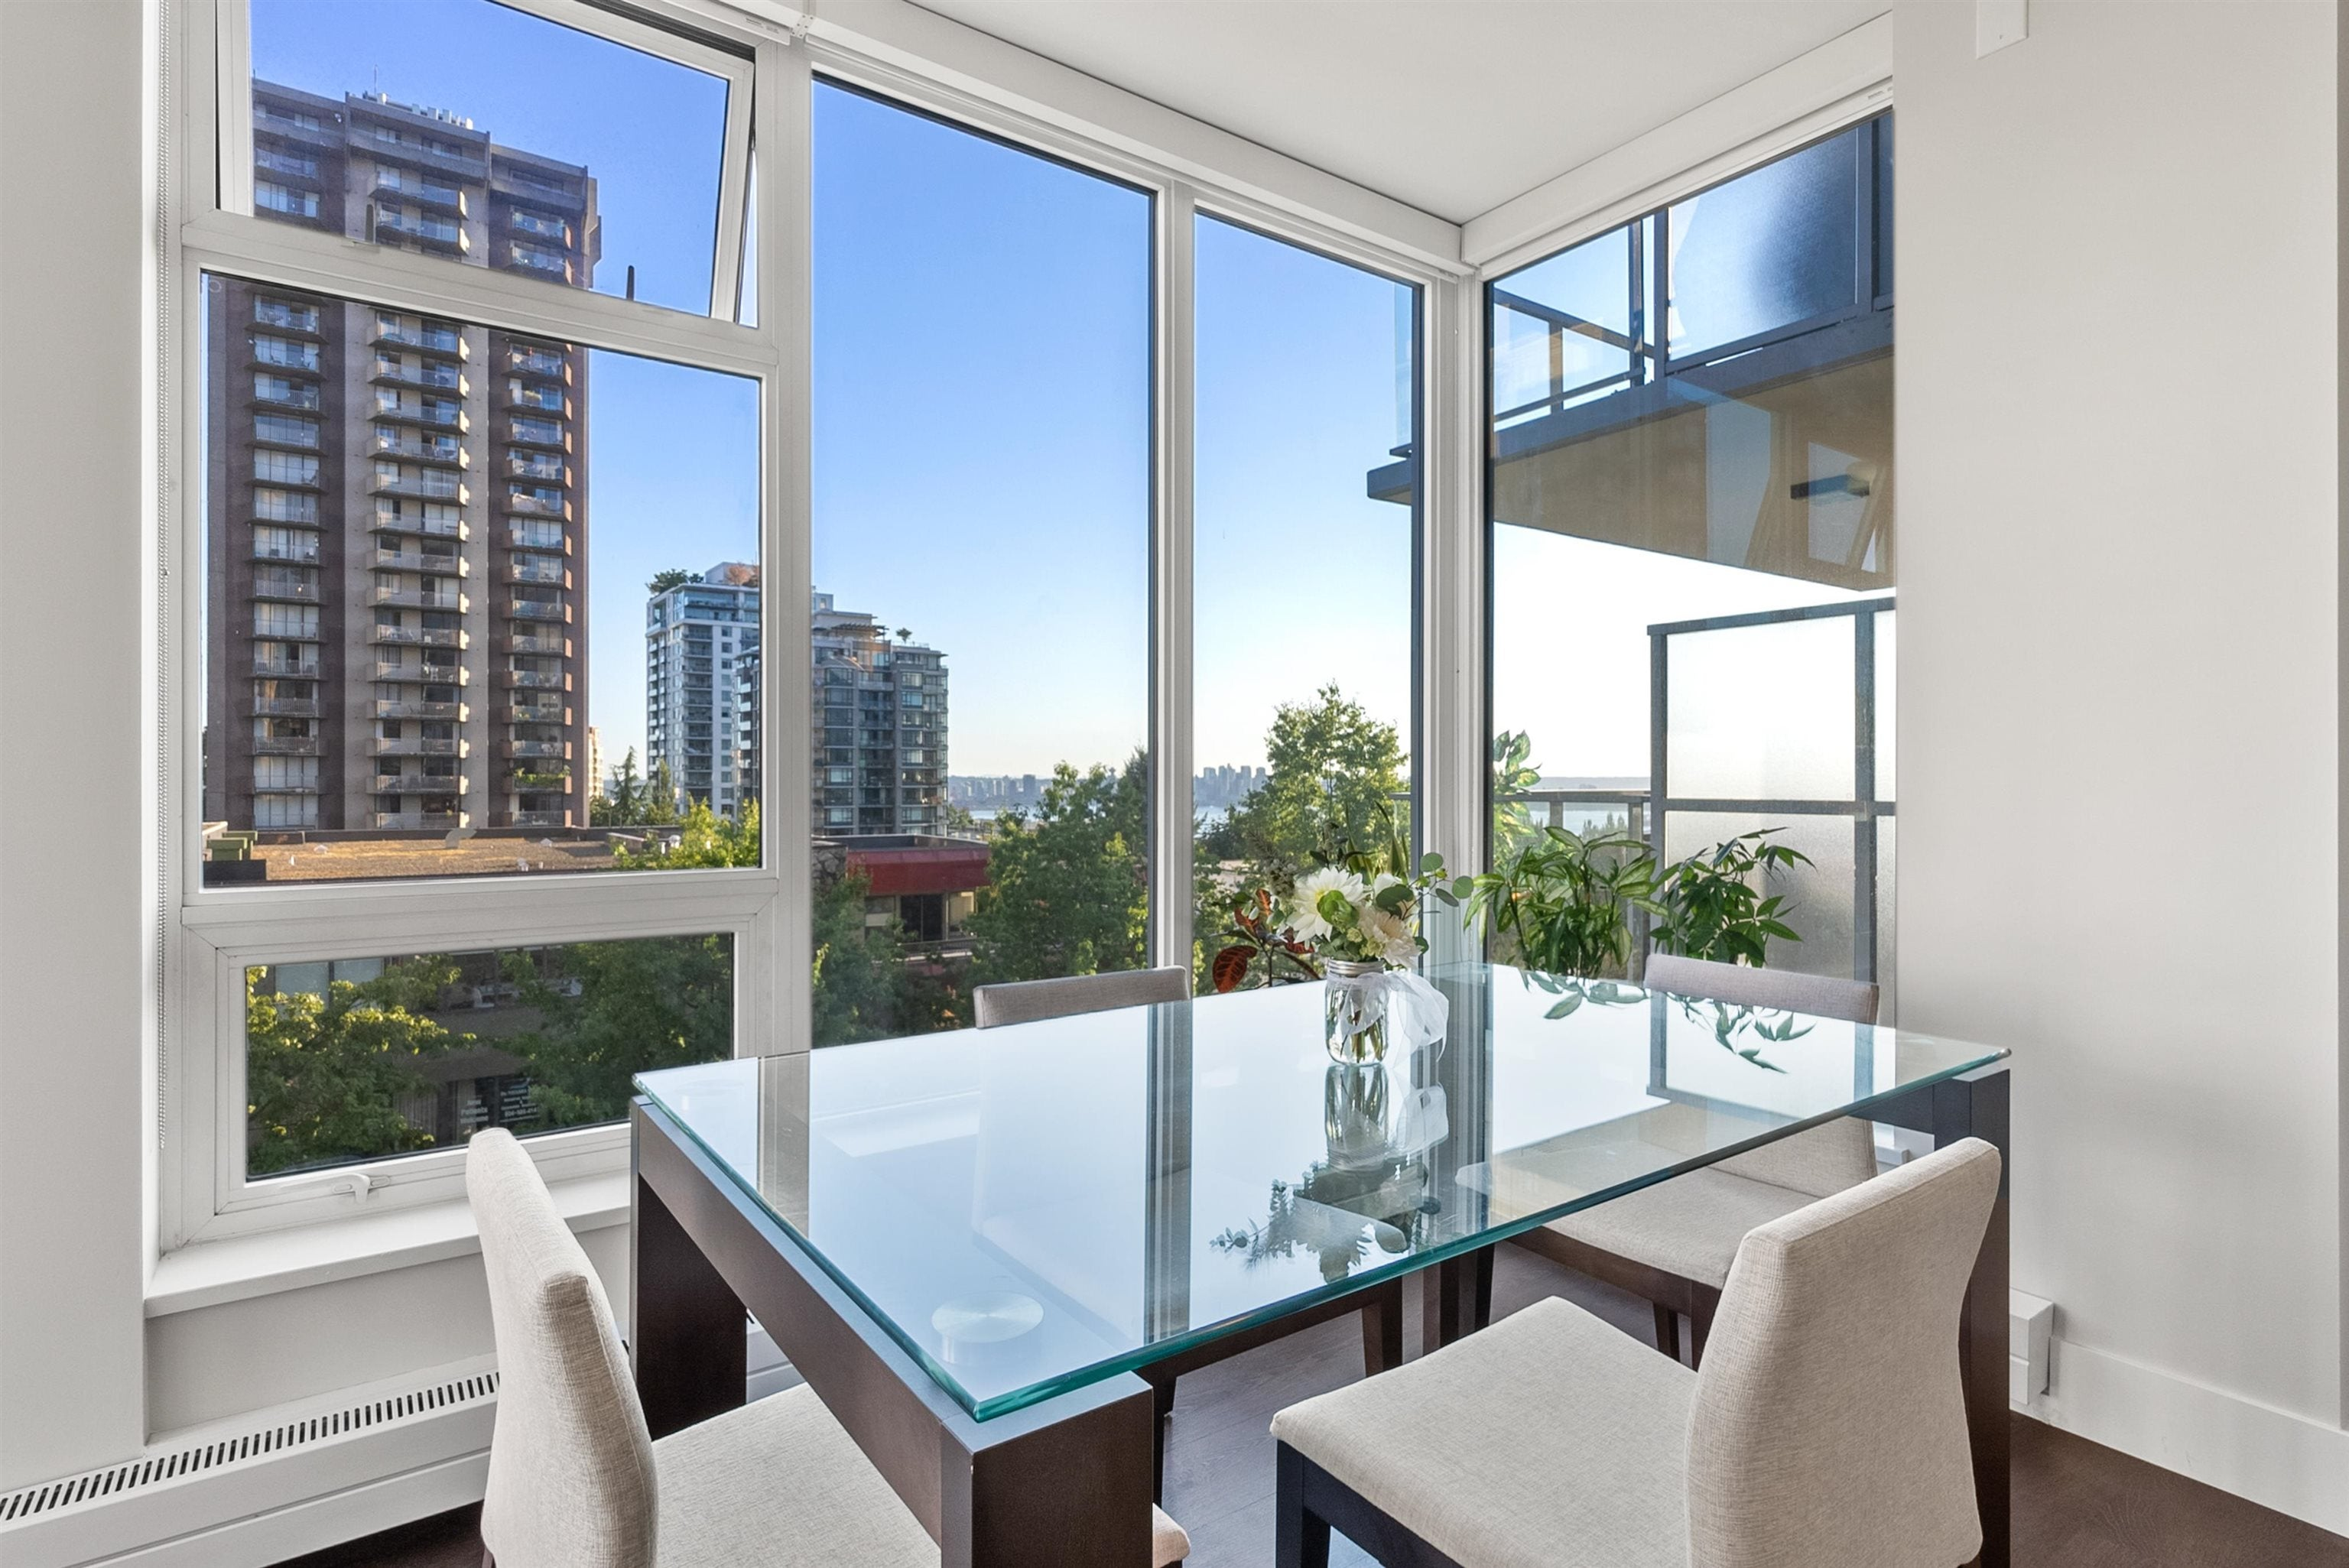 503 150 W 15TH STREET - Central Lonsdale Apartment/Condo for sale, 2 Bedrooms (R2624732) - #6